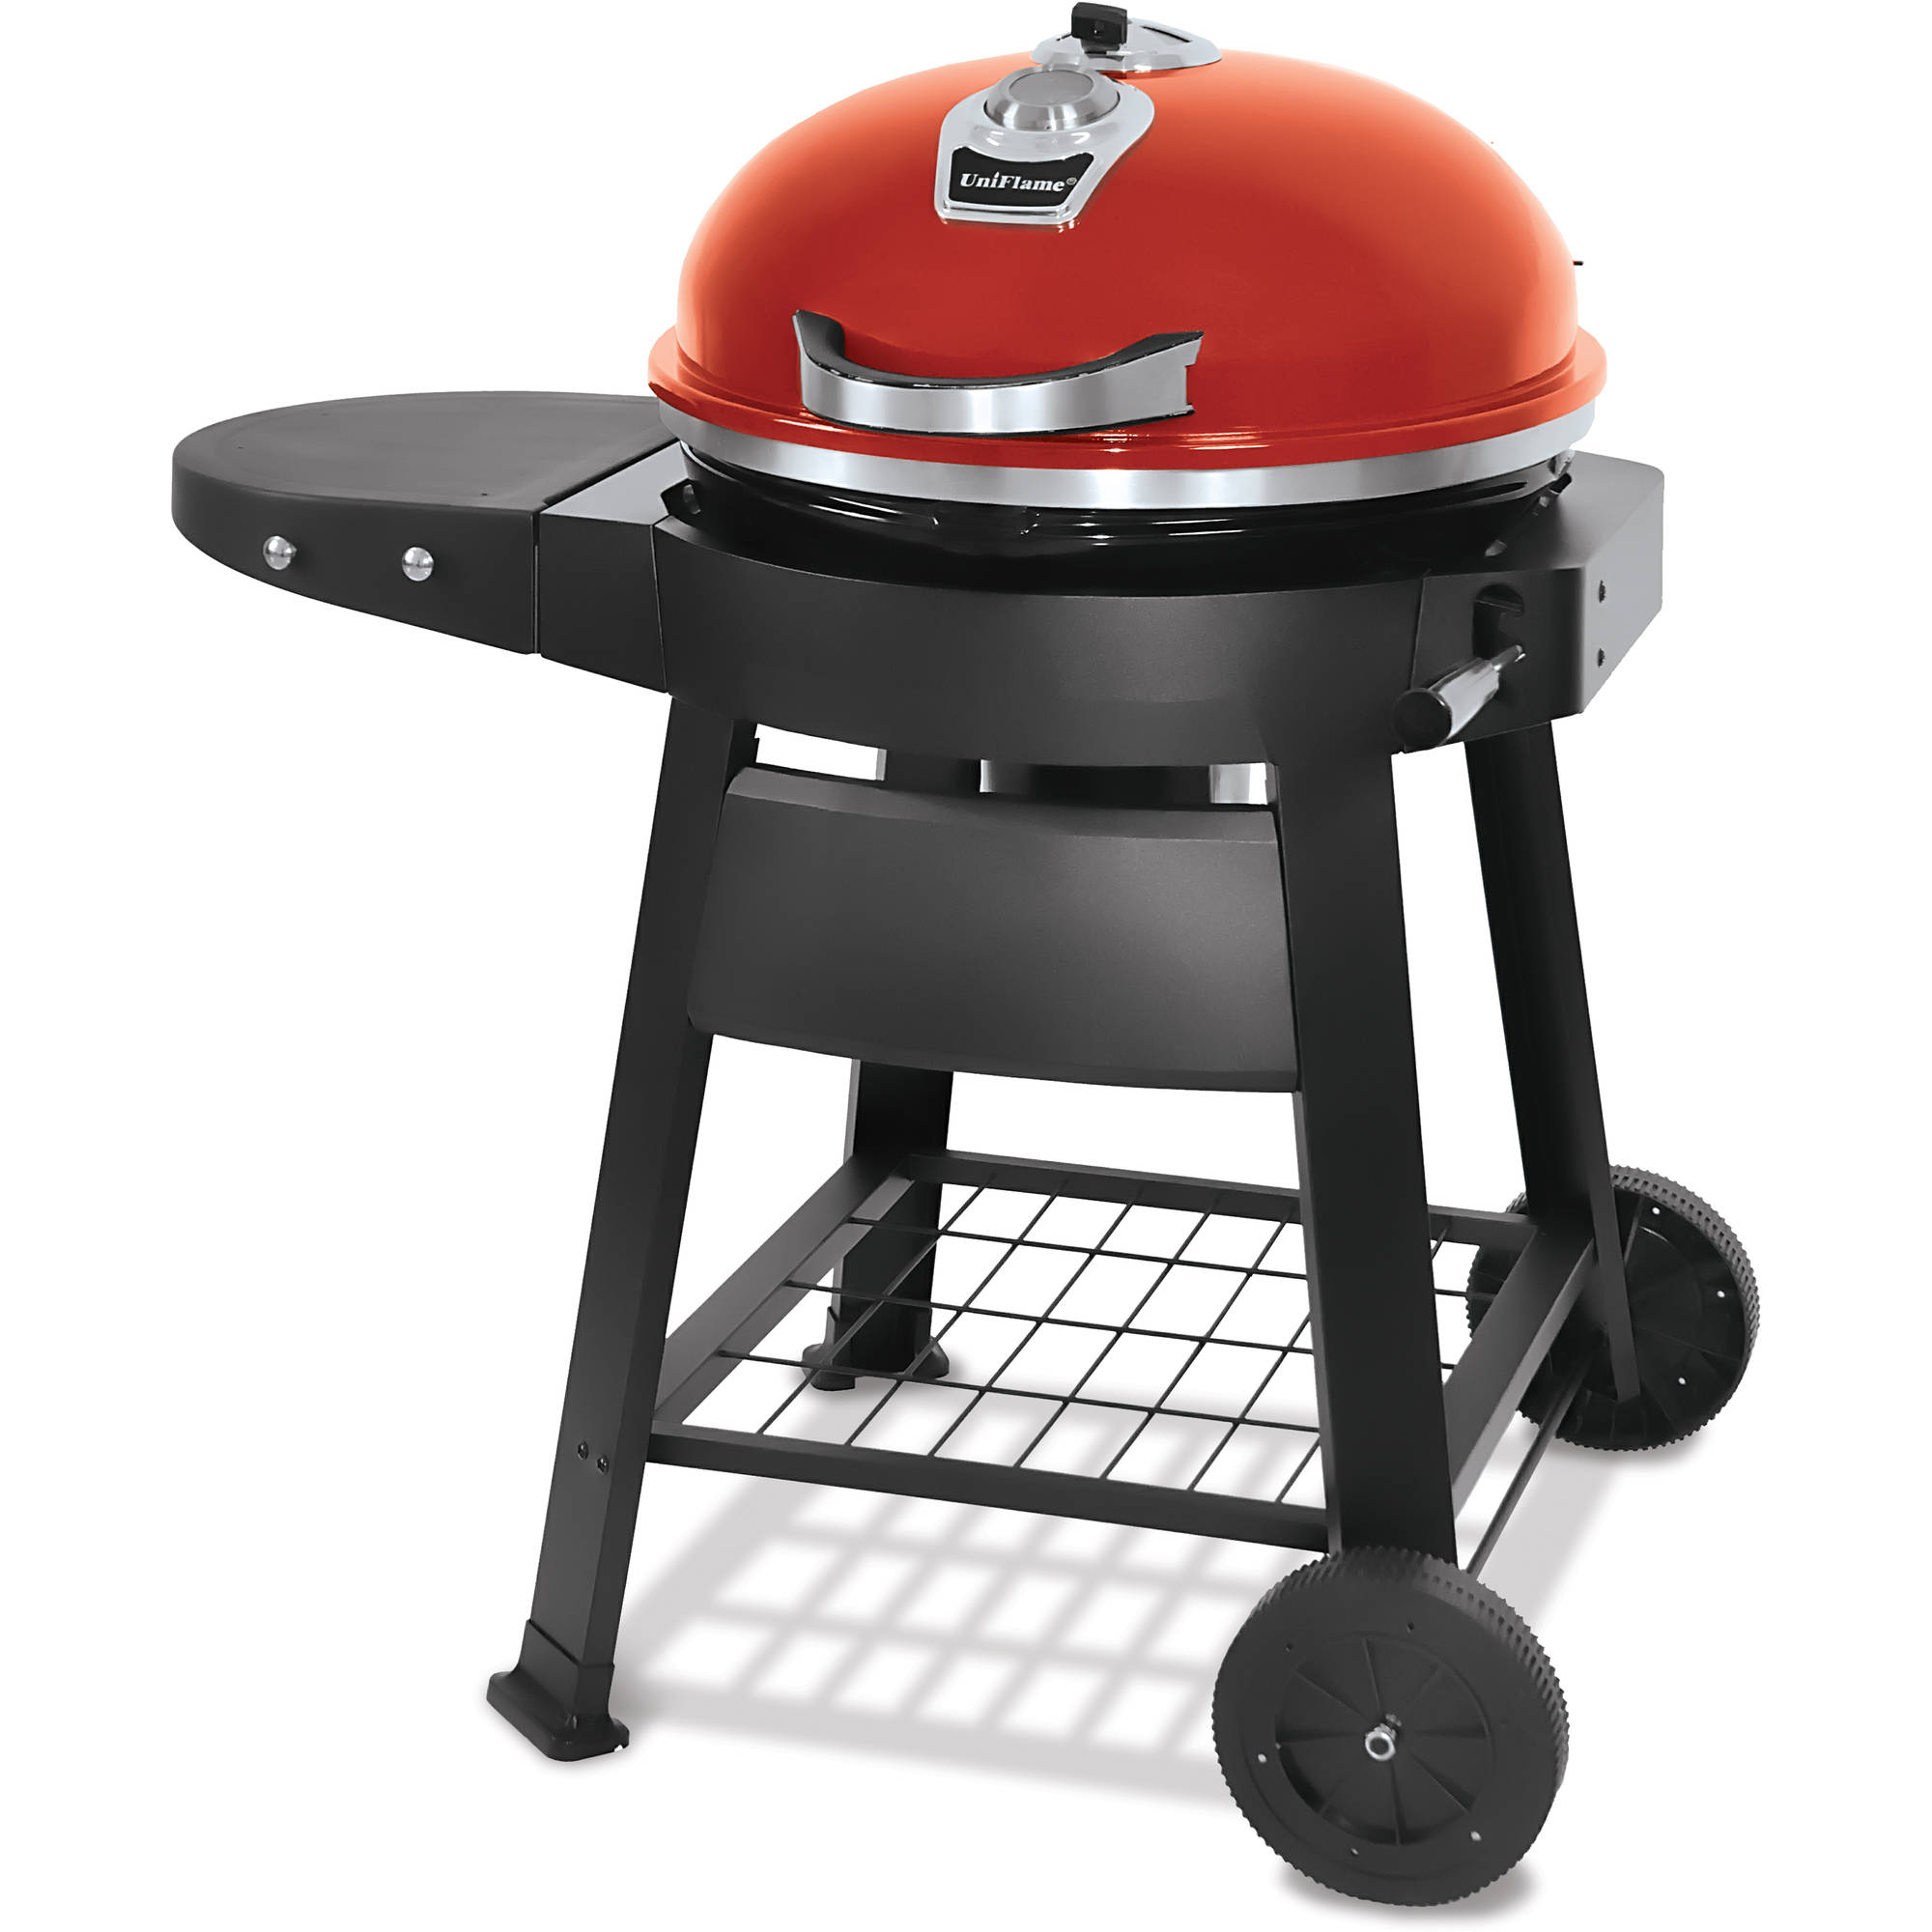 Uniflame Charcoal Grill